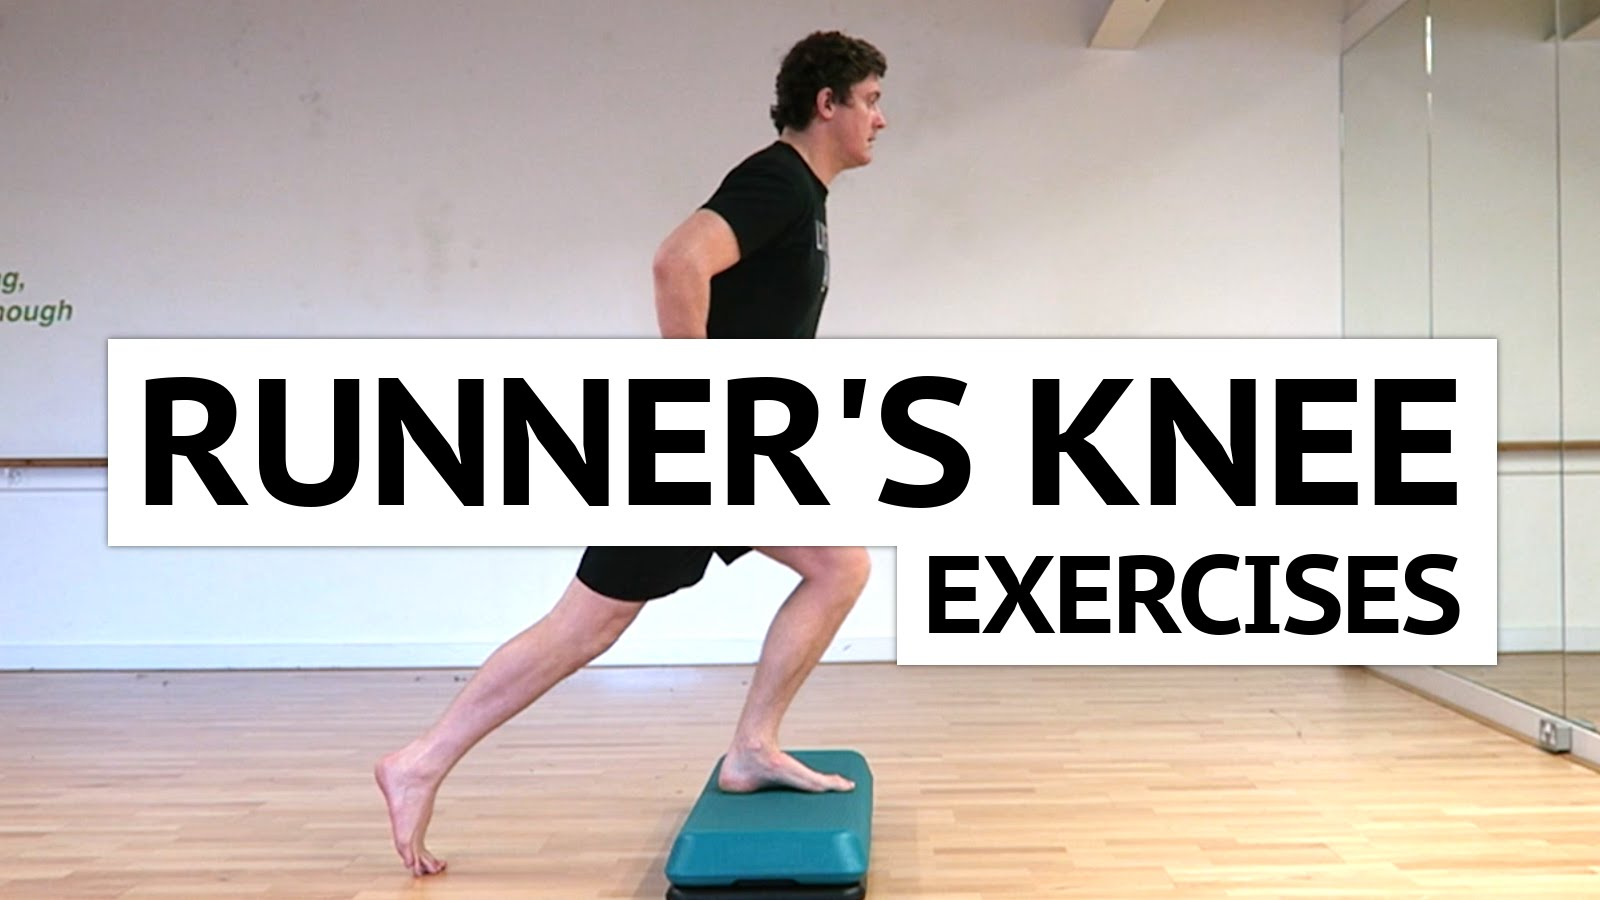 Runners knee exercises 10 minute rehab routine ccuart Image collections